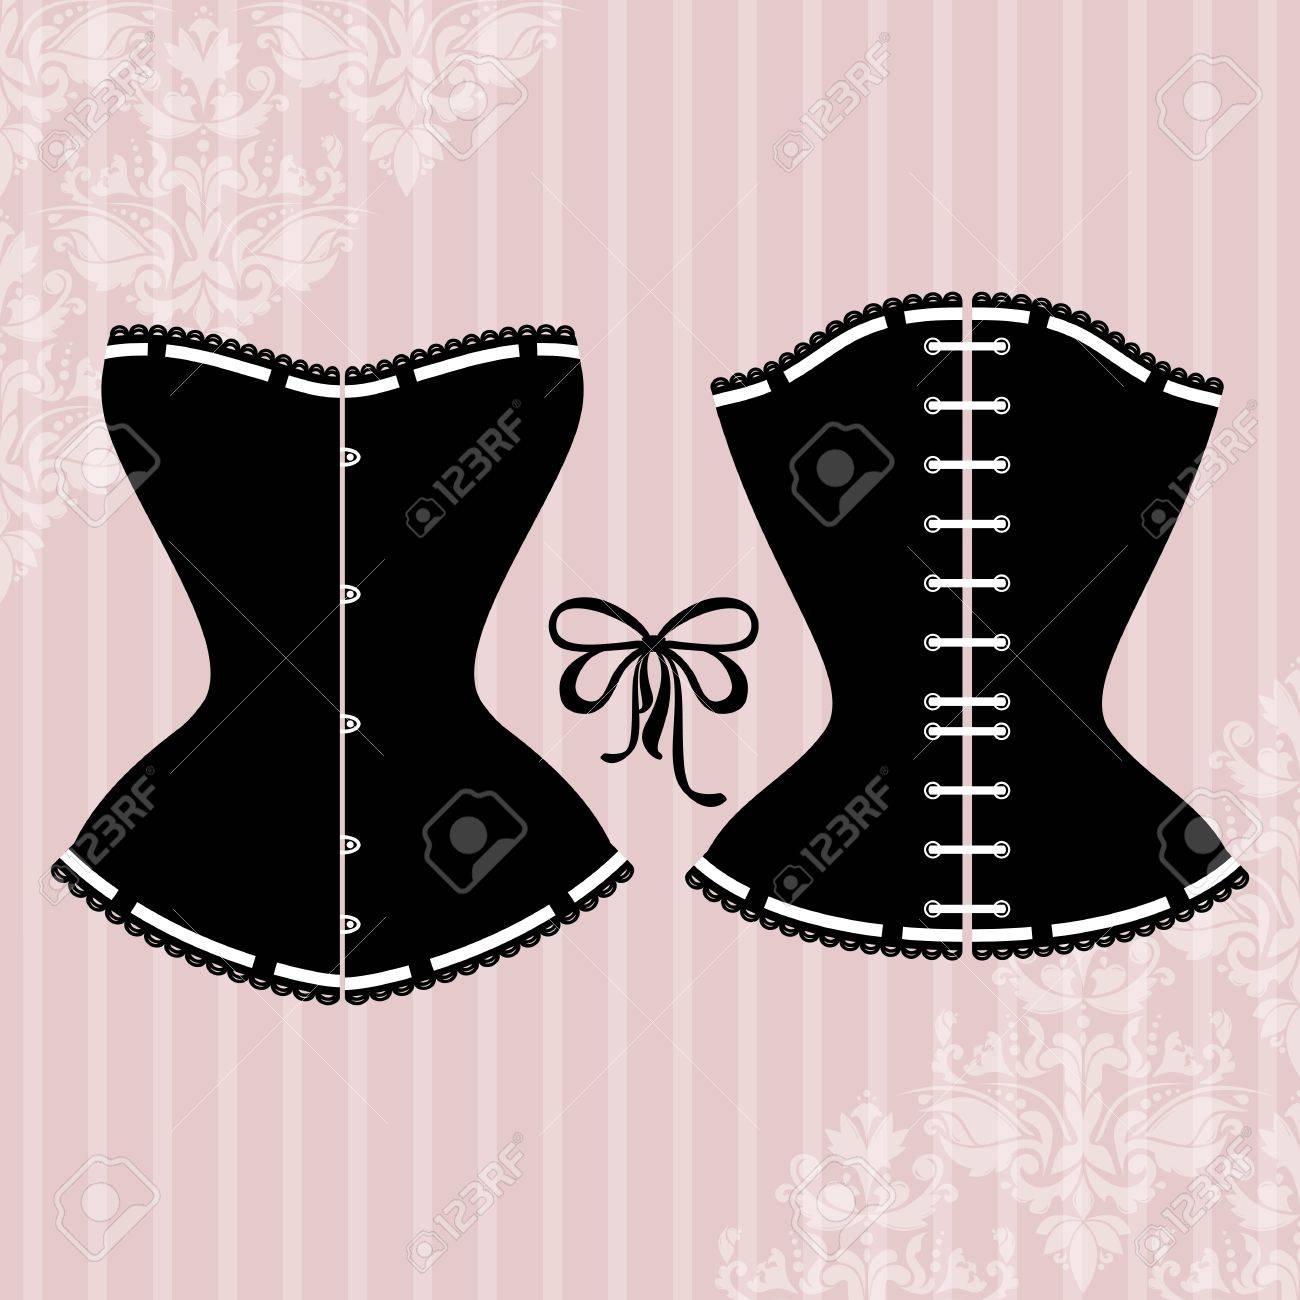 Vintage background with elegant corset silhouette - 29928884